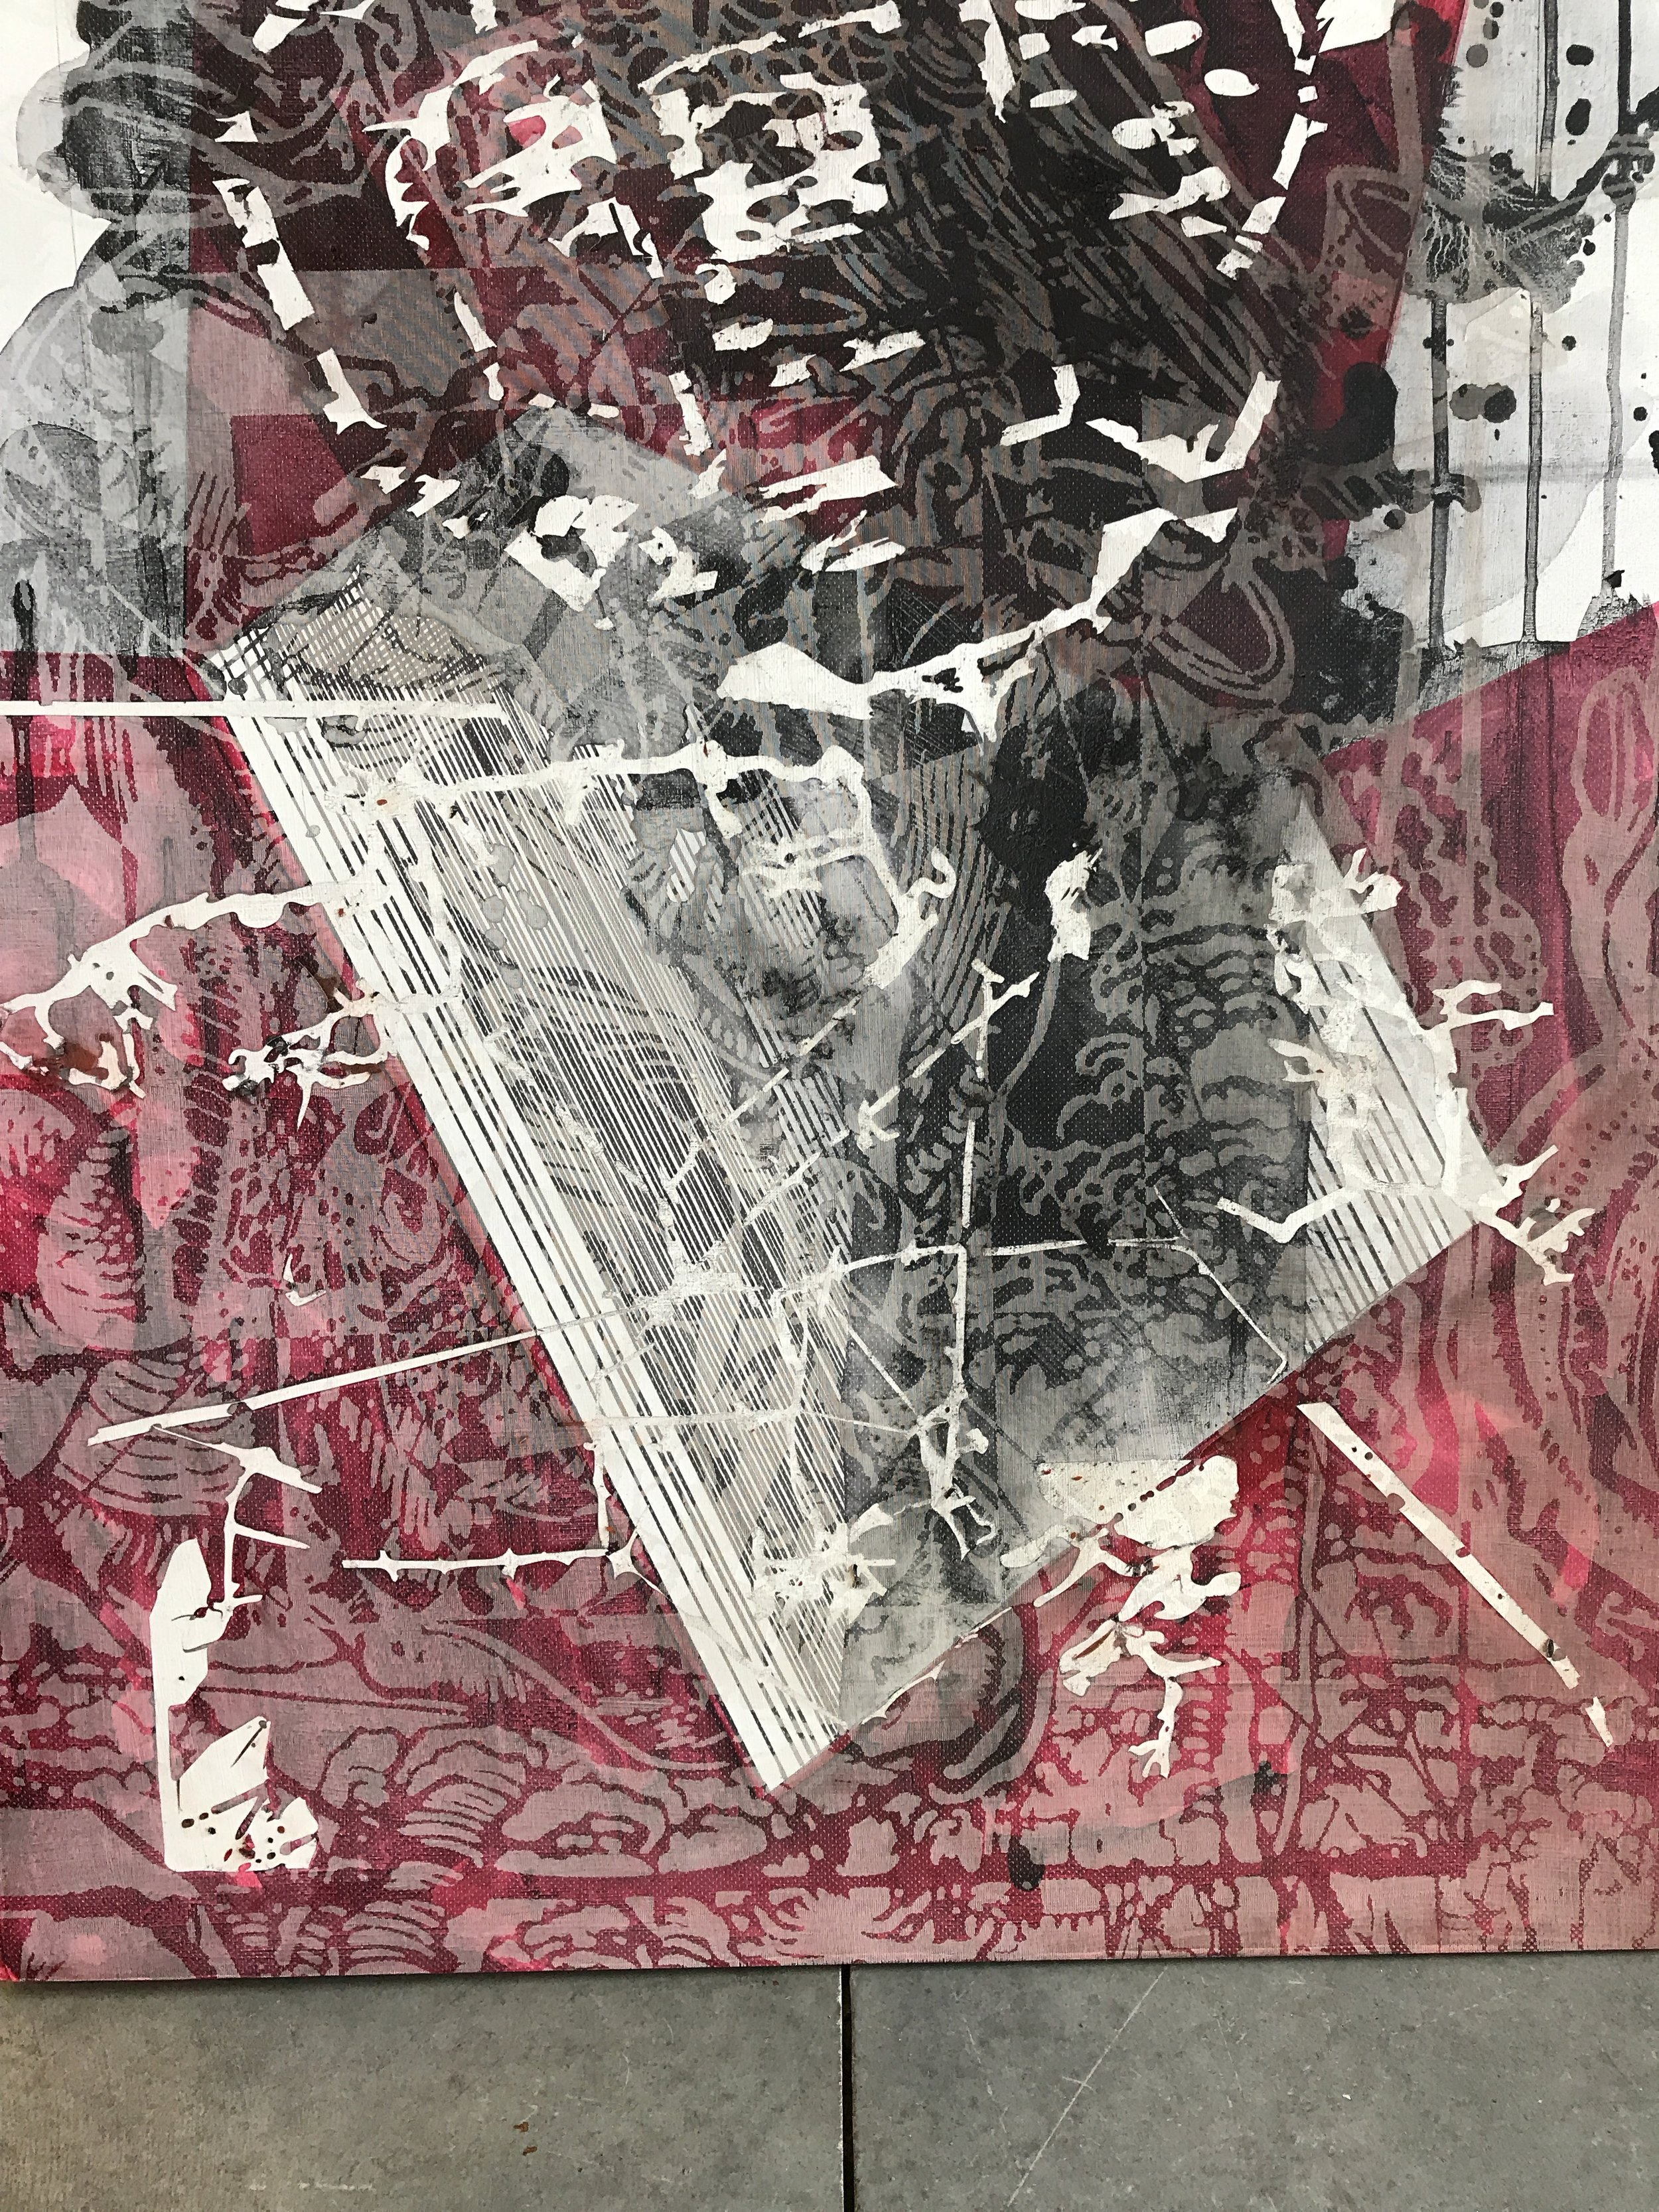 """After some experimentations with materials, I have migrated printmaking processes to """"hard"""" surface like gessoed panels thus opening a dialogue to erase strict definitions of what is a print and what a painting is. This specific work is bringing the old master Durer to today's personal interpretation."""